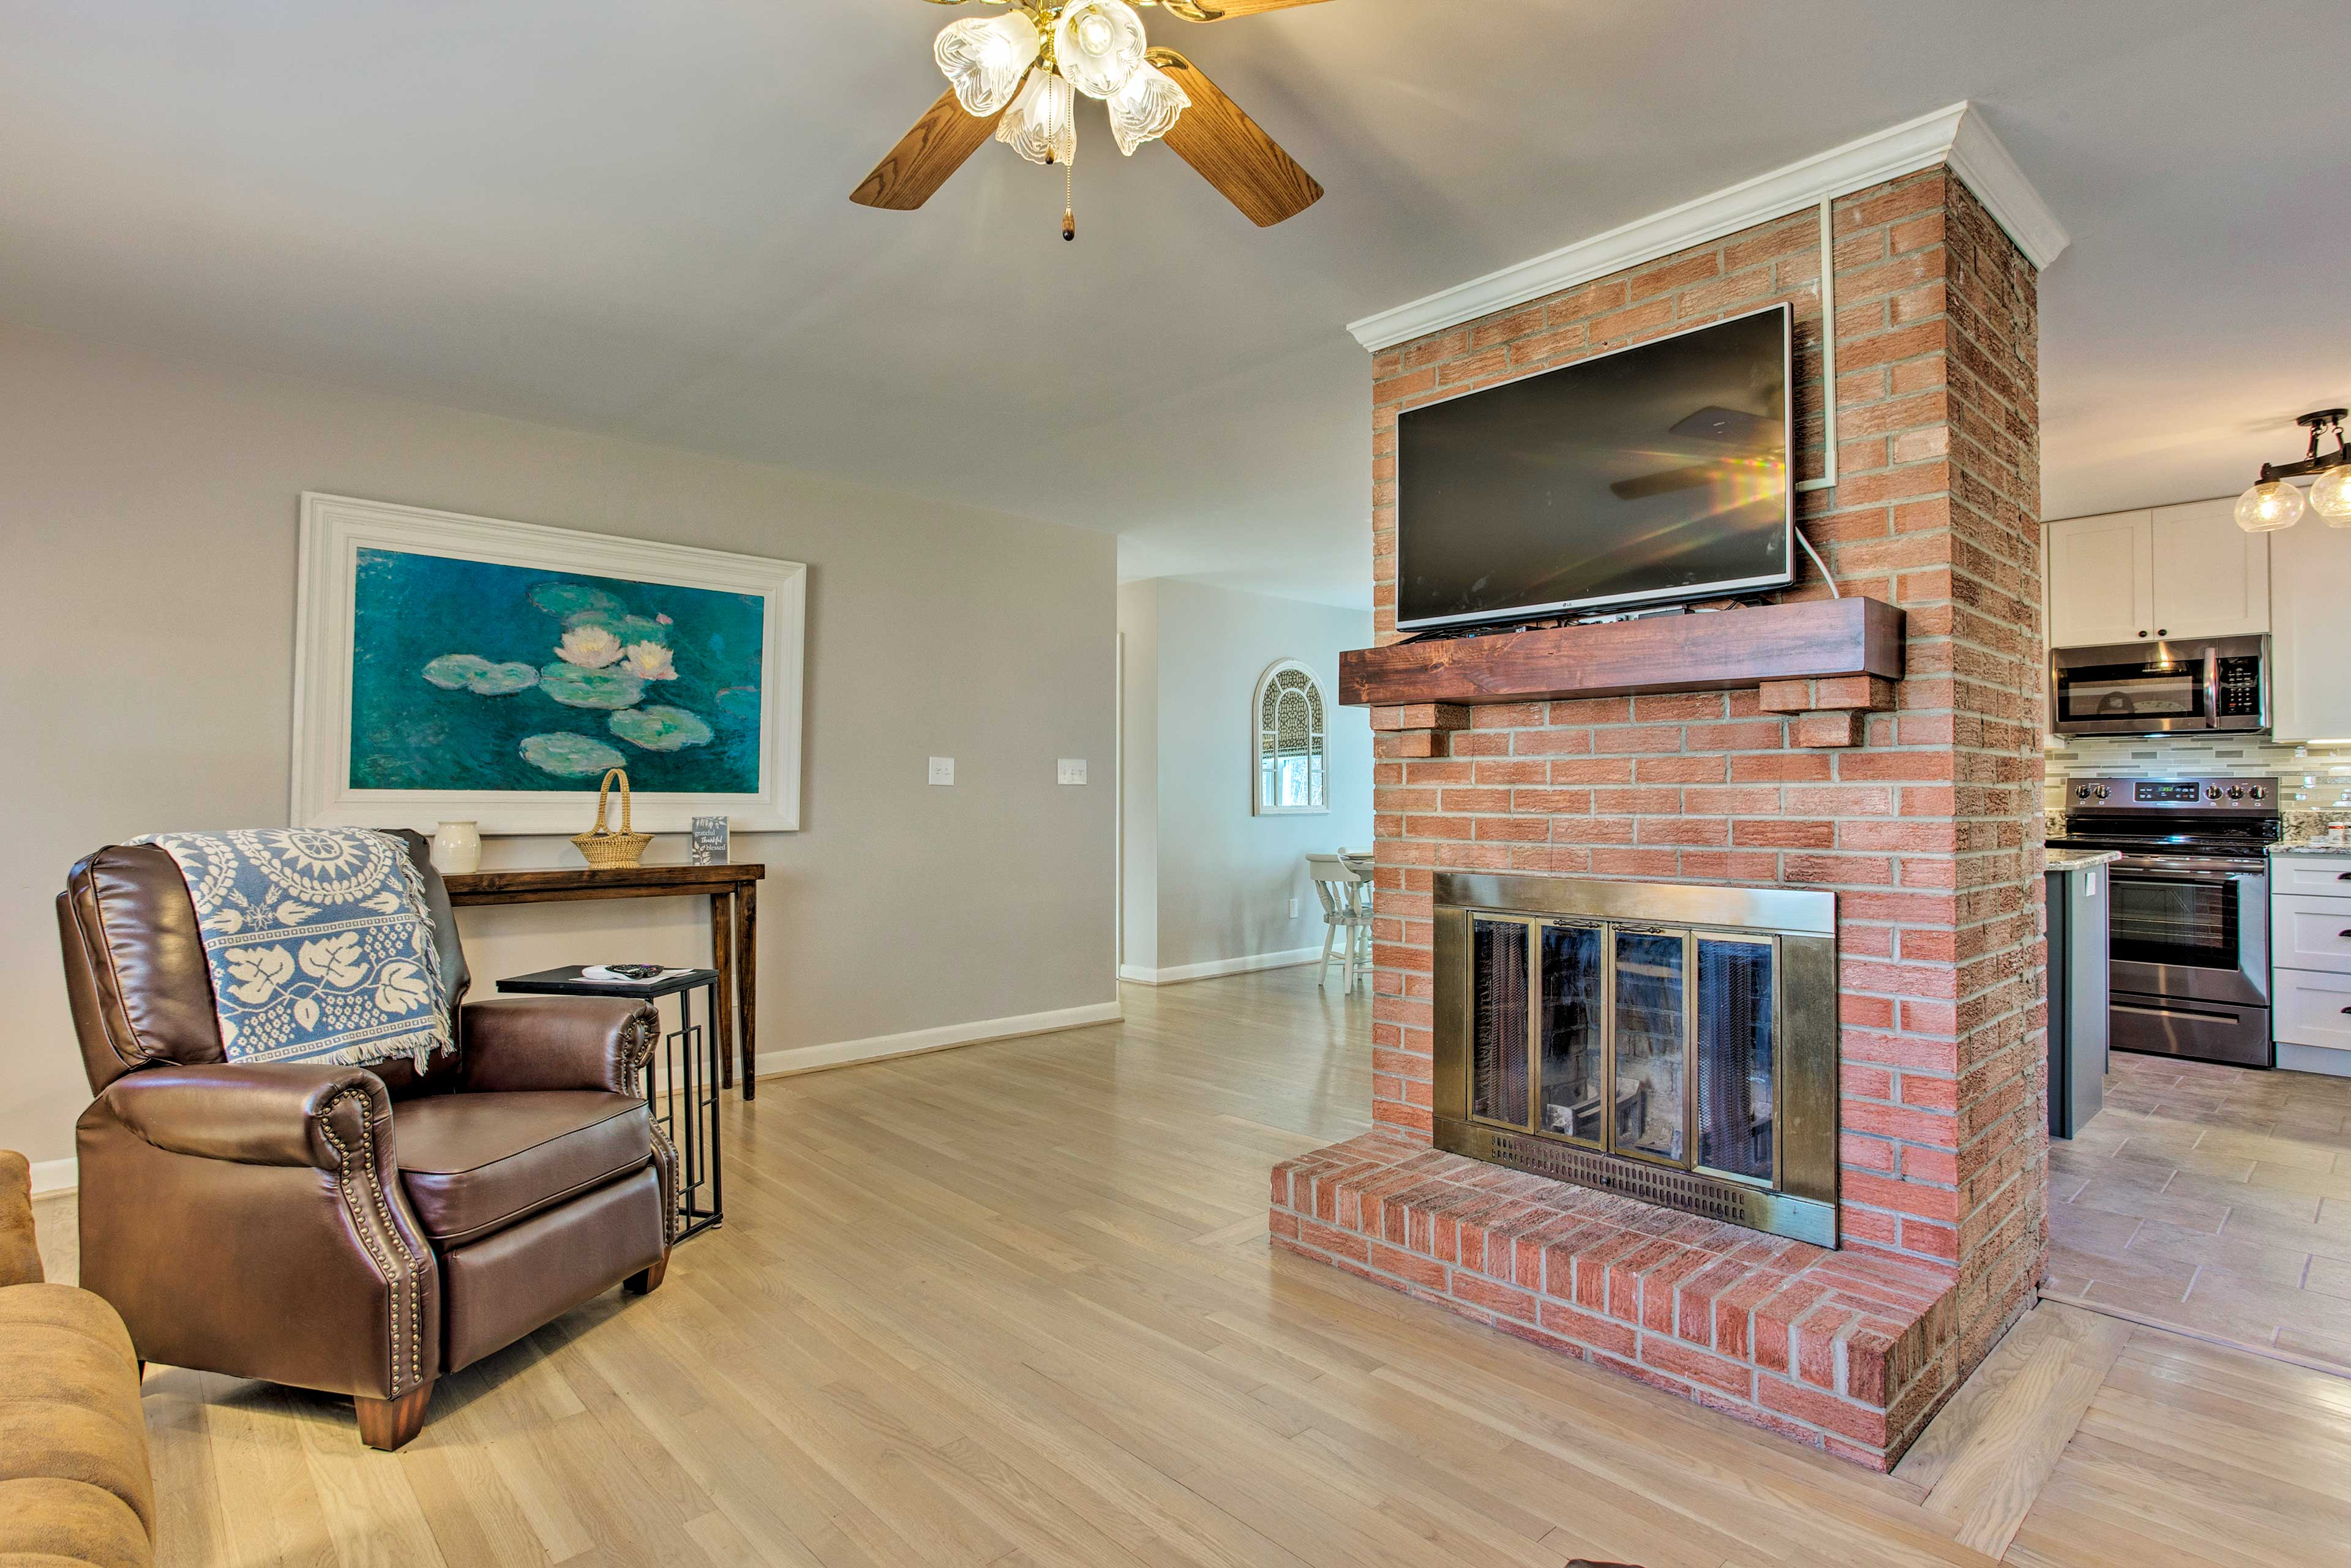 A brick wall with a mounted cable TV serves as the room's focal point.